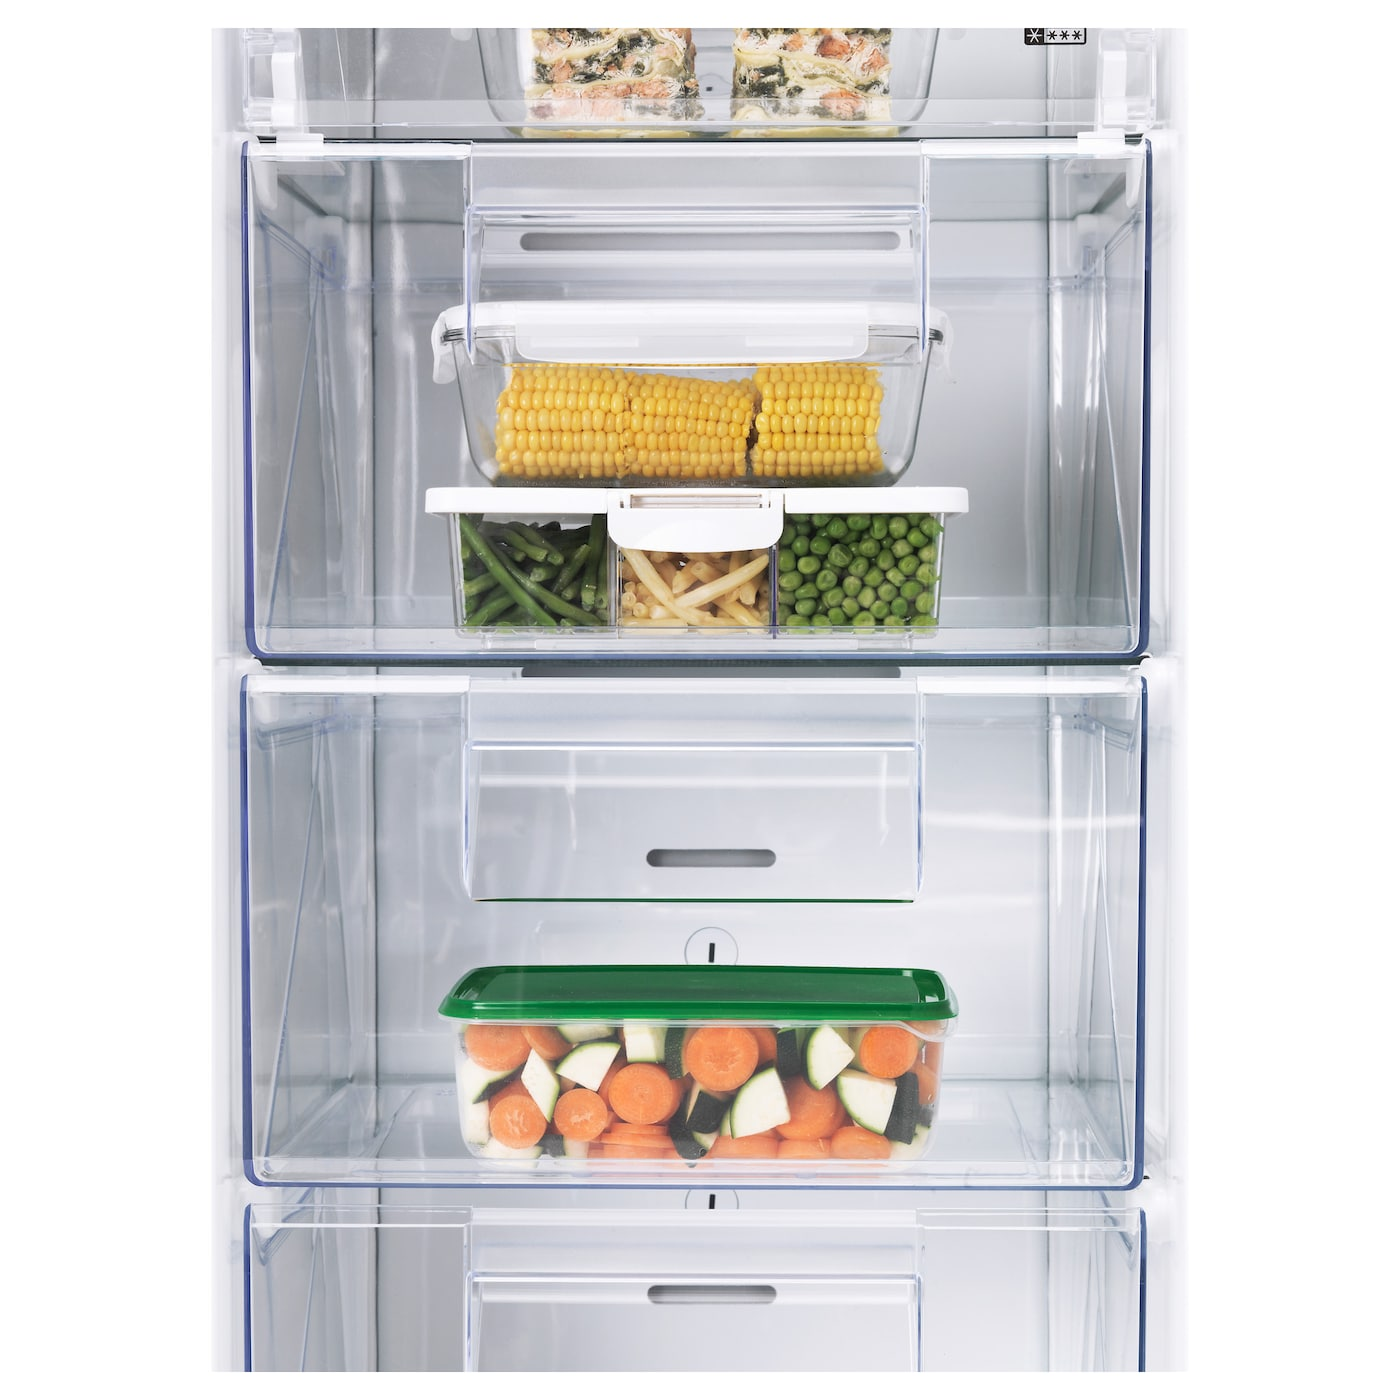 IKEA FRYSA integrated freezer A++ 5 year guarantee. Read about the terms in the guarantee brochure.